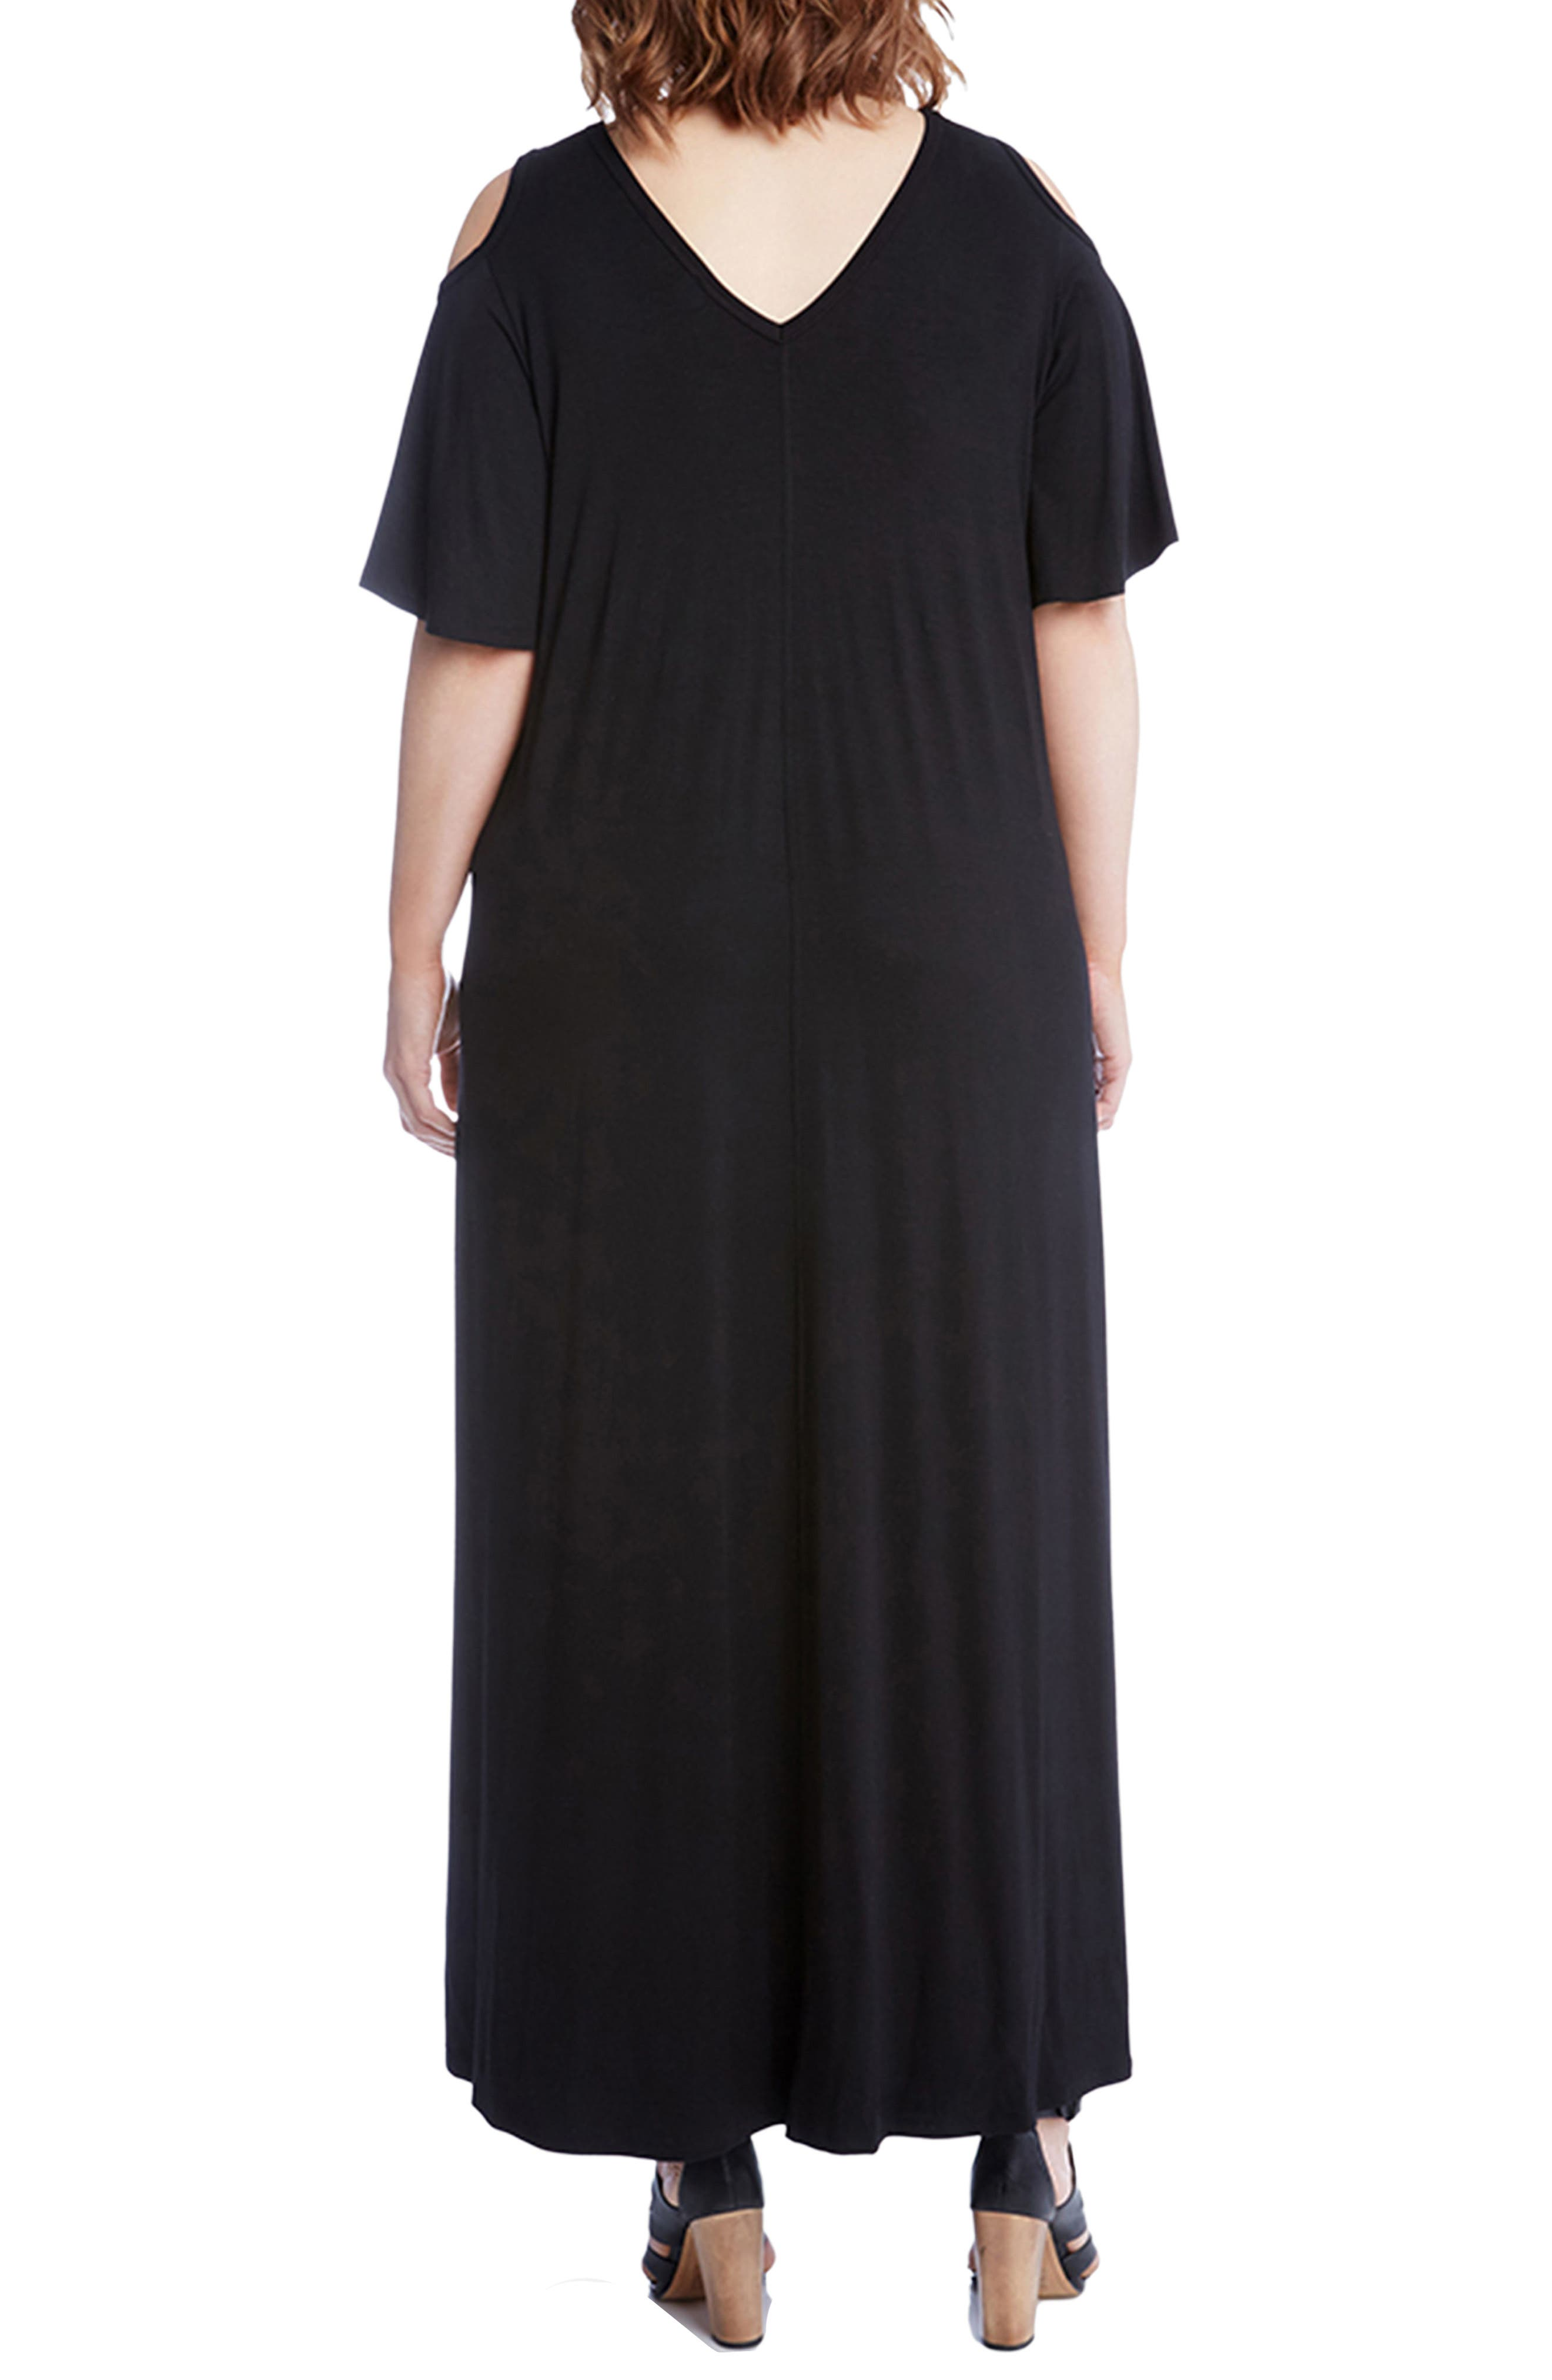 Cold Shoulder A-Line Maxi Dress,                             Alternate thumbnail 2, color,                             001